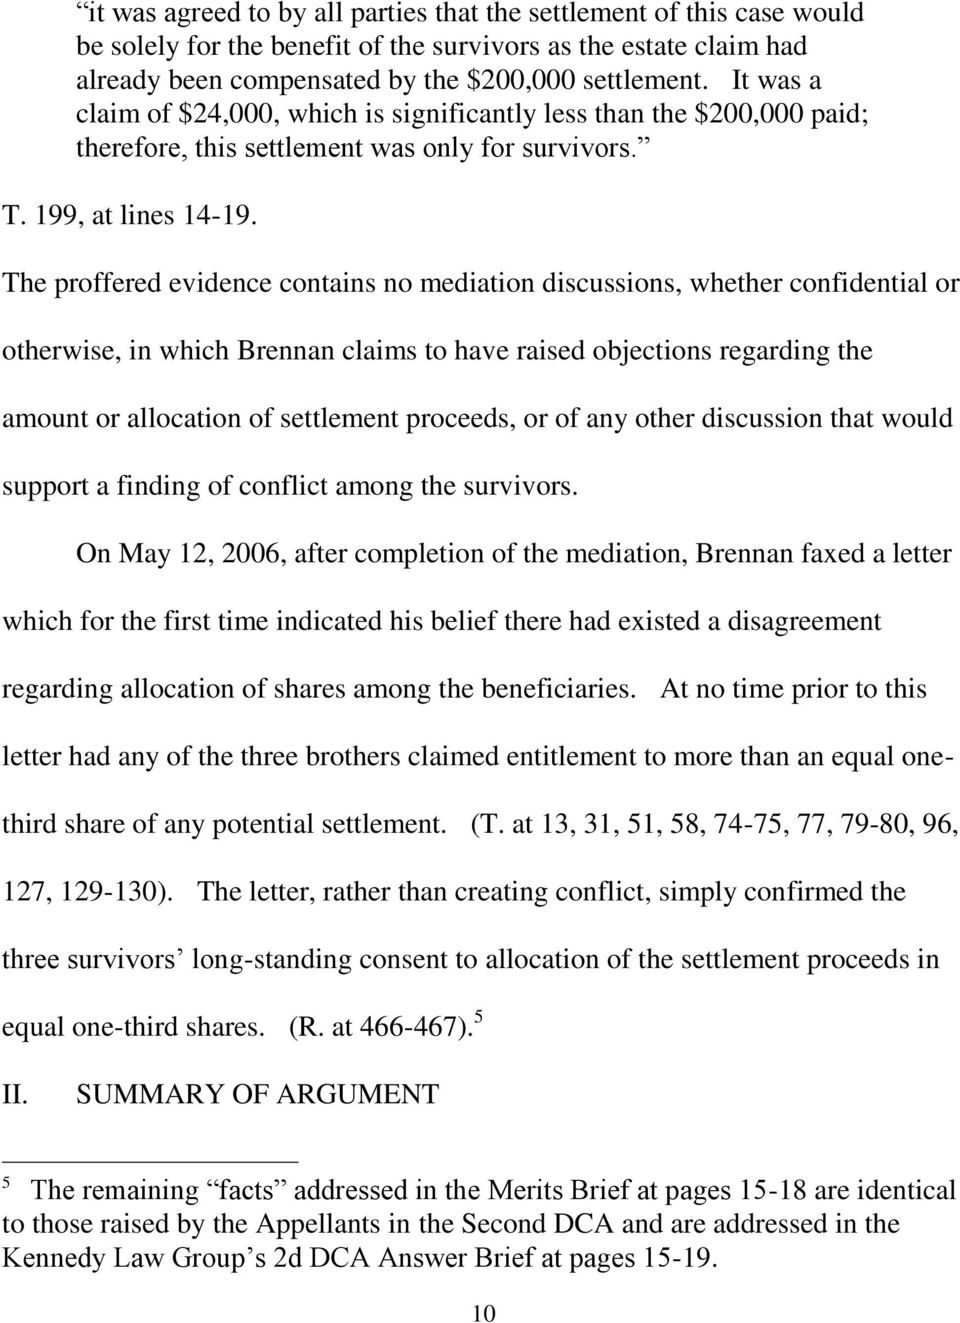 The proffered evidence contains no mediation discussions, whether confidential or otherwise, in which Brennan claims to have raised objections regarding the amount or allocation of settlement